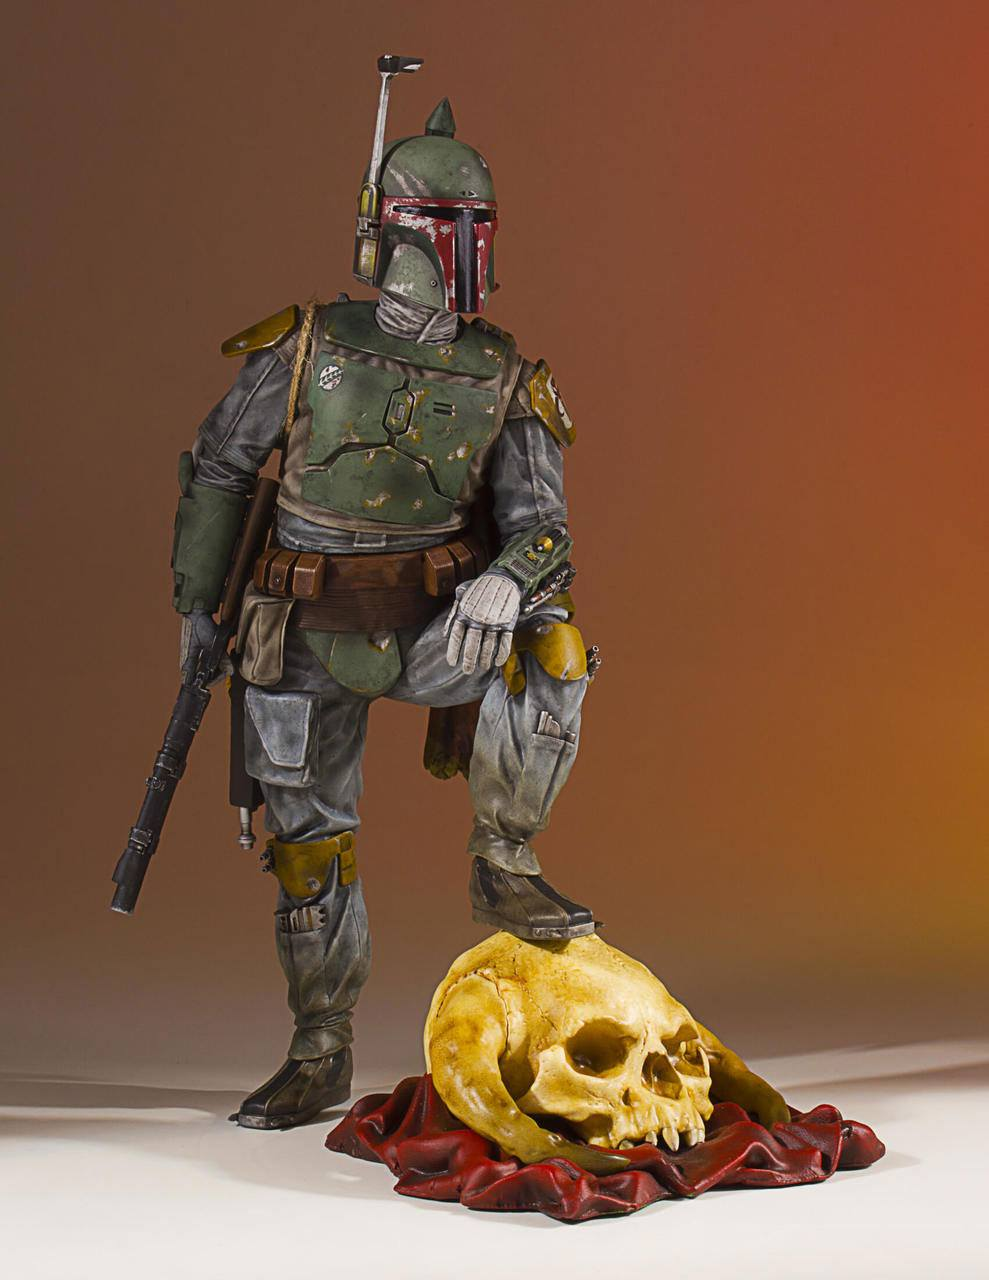 Star Wars Collectors Gallery Statue 1/8 Boba Fett 23 cm